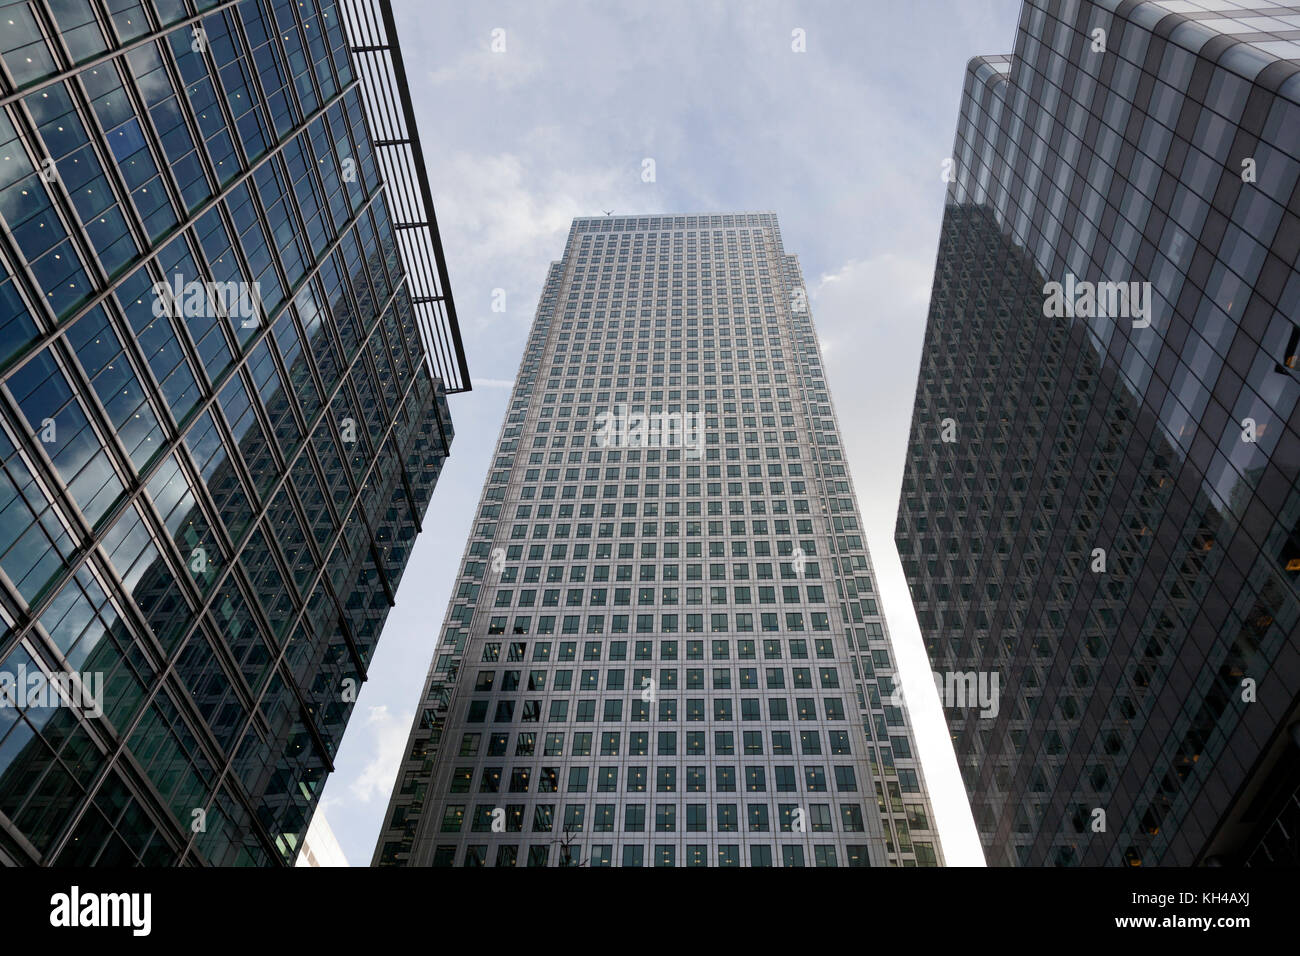 Canary Wharf Tower flanked by other blocks, London - Stock Image